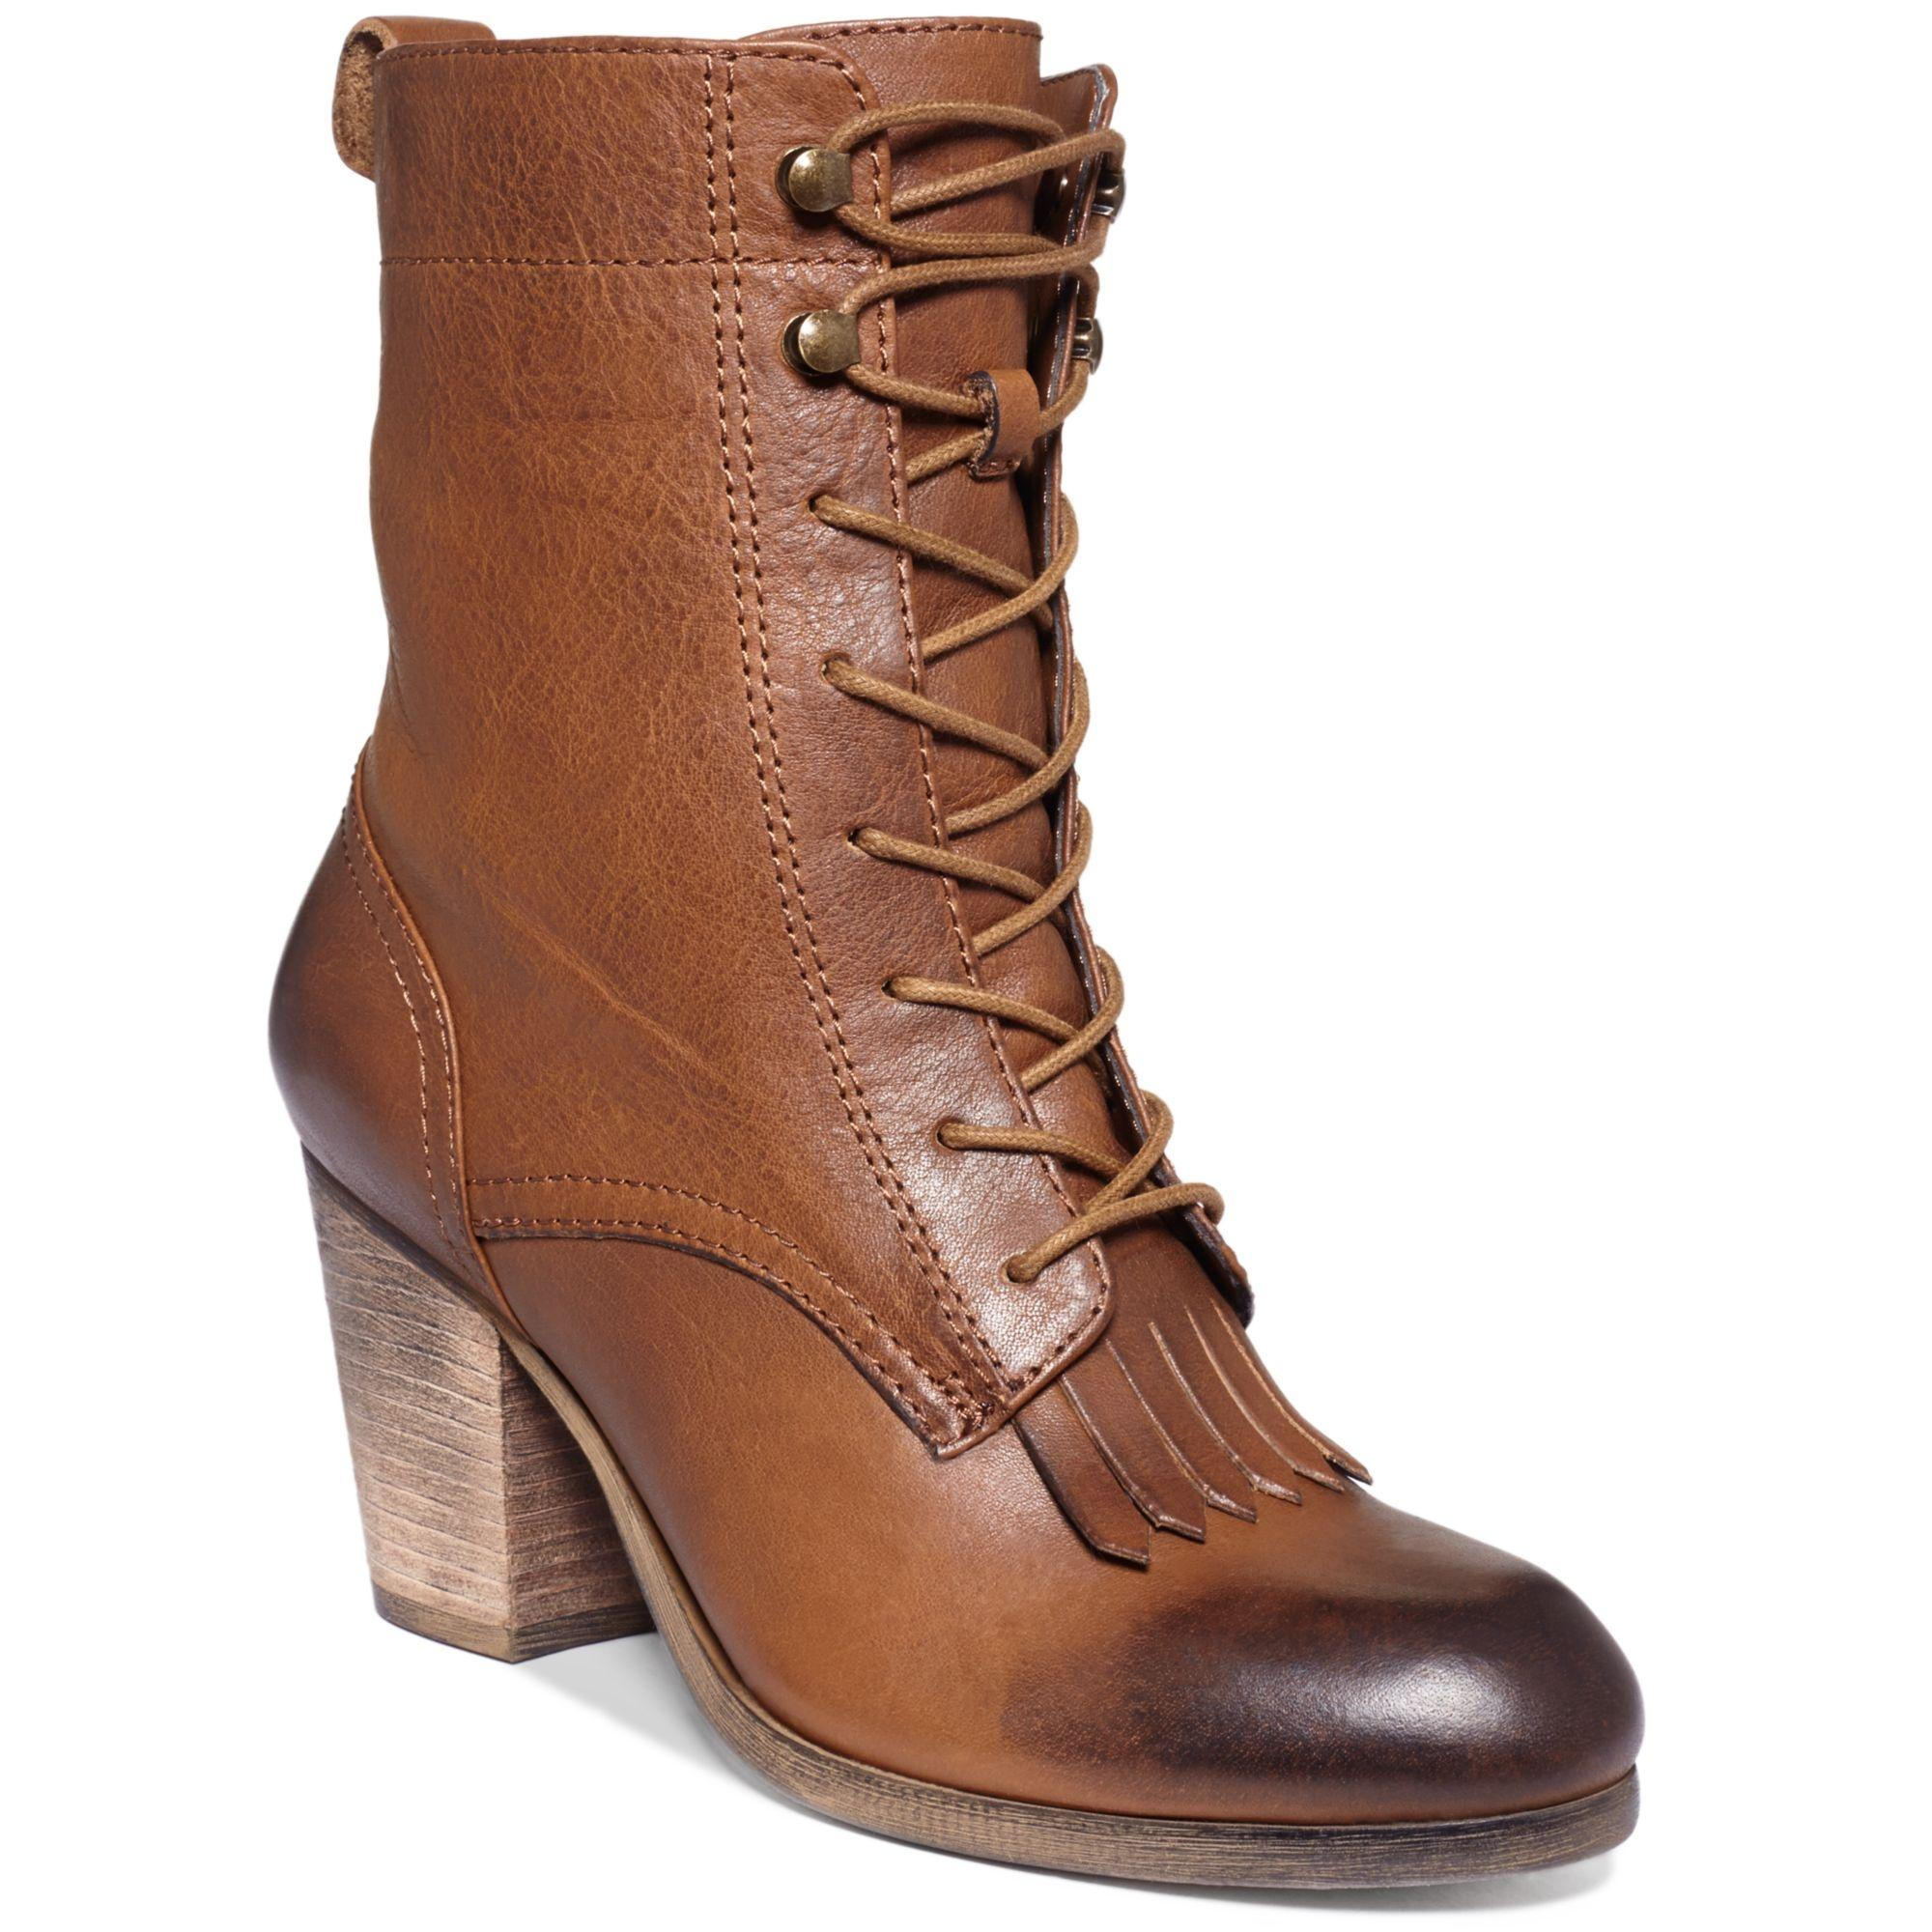 Ralph Lauren Mesa Brown Boots on Sale 17% Off | Boots &amp Booties